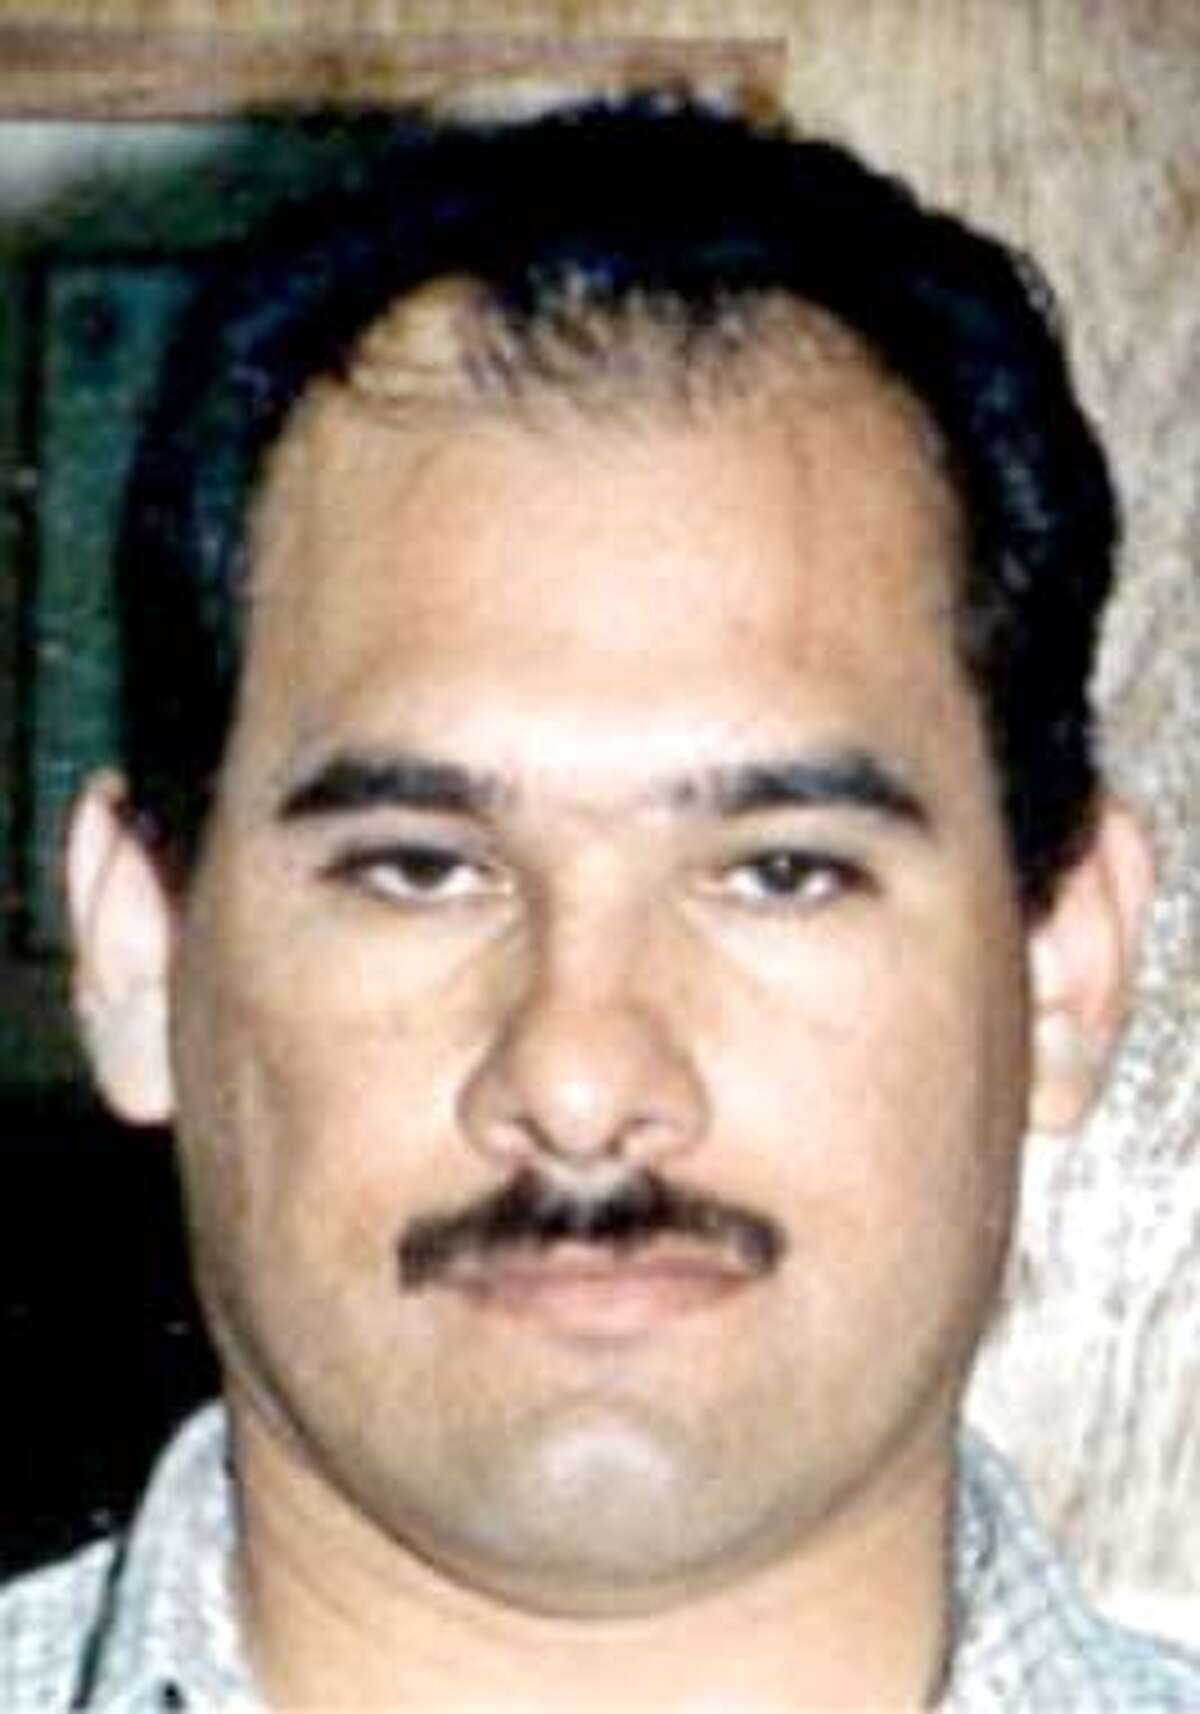 This is an undated handout photo of suspected drug lord Osiel Cardenas. Cardenas was arrested Friday, March 14, 2003 after a shootout with Mexican soldiers in the border city of Matamoros. (AP Photo/PGR, Attorney General's Office)